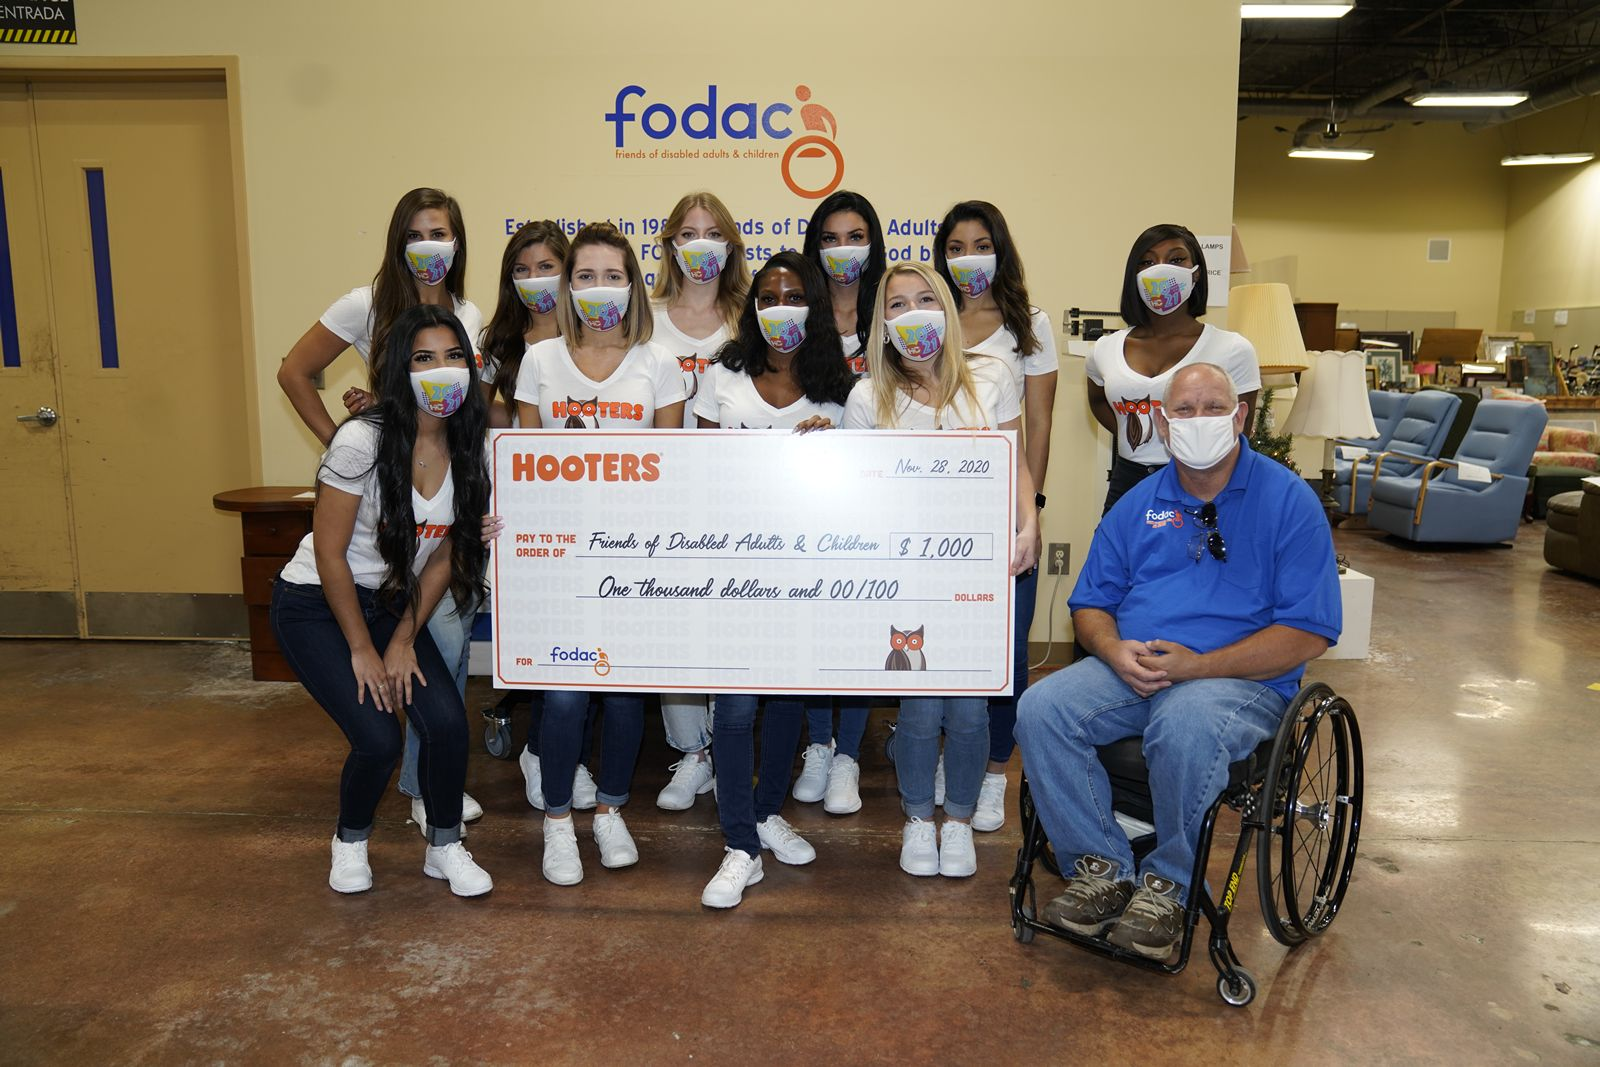 2021 Hooters Calendar Girls Hosting Signing Events while Lending Much-Needed Community Support this Fall